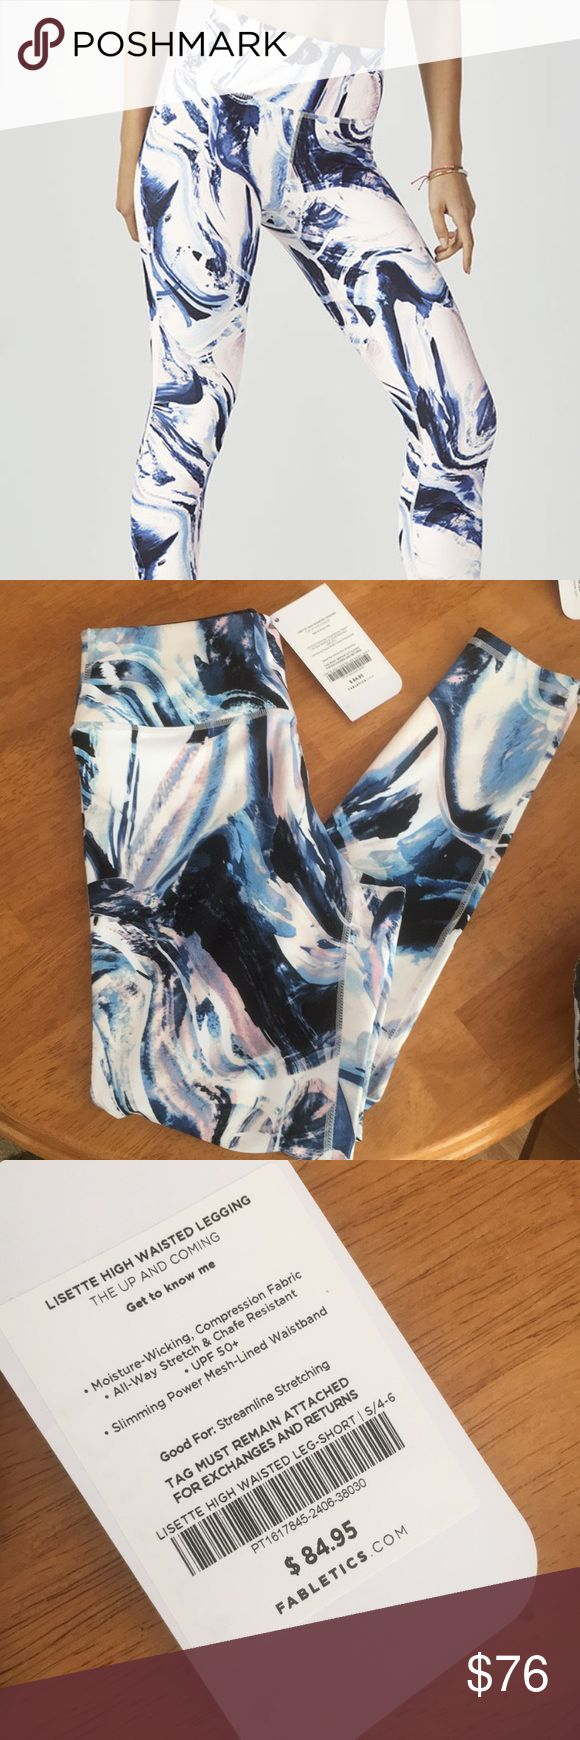 Fabletics Lisette High Waisted Legging Excellent condition never worn with tags! Just not the right size!   Color: frosted marble  Size: S/4-6 leg-short   Moisture wicking, compression fabric  Stretch and chafe resistant UPF 50+  Slimming power mesh-lined waistband Fabletics Pants Ankle & Cropped